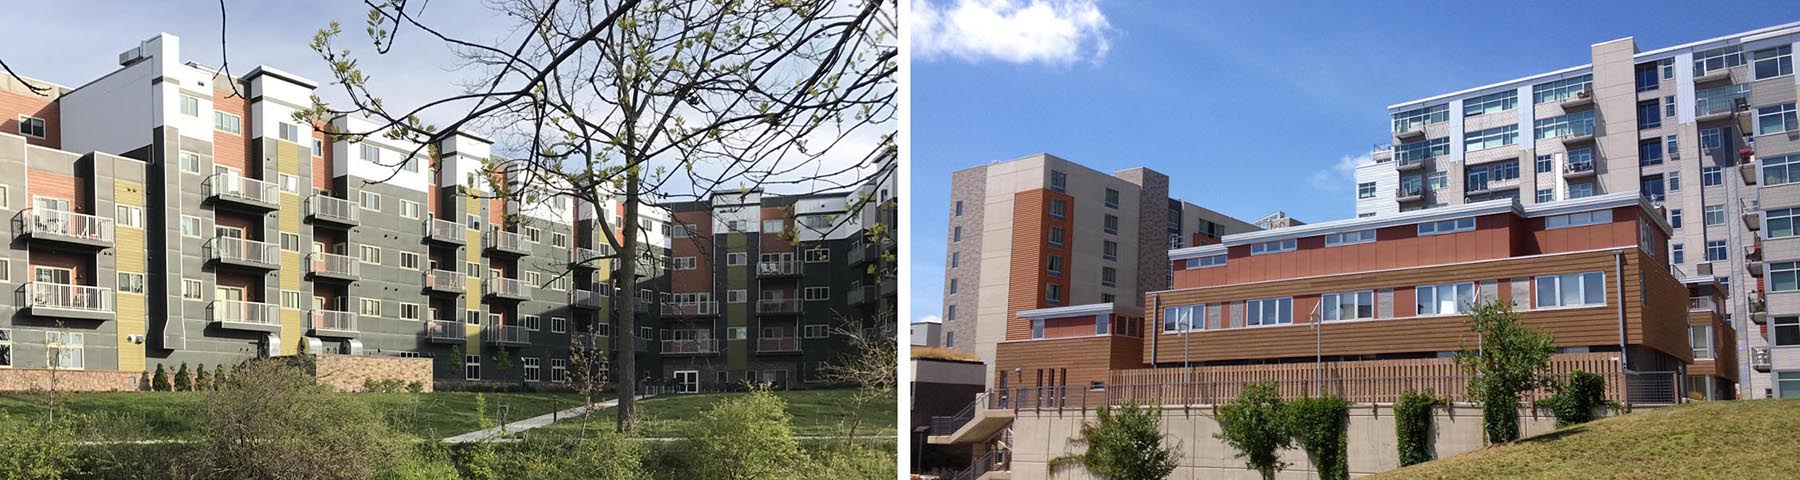 Examples of new standalone building developments showing proper design strategies